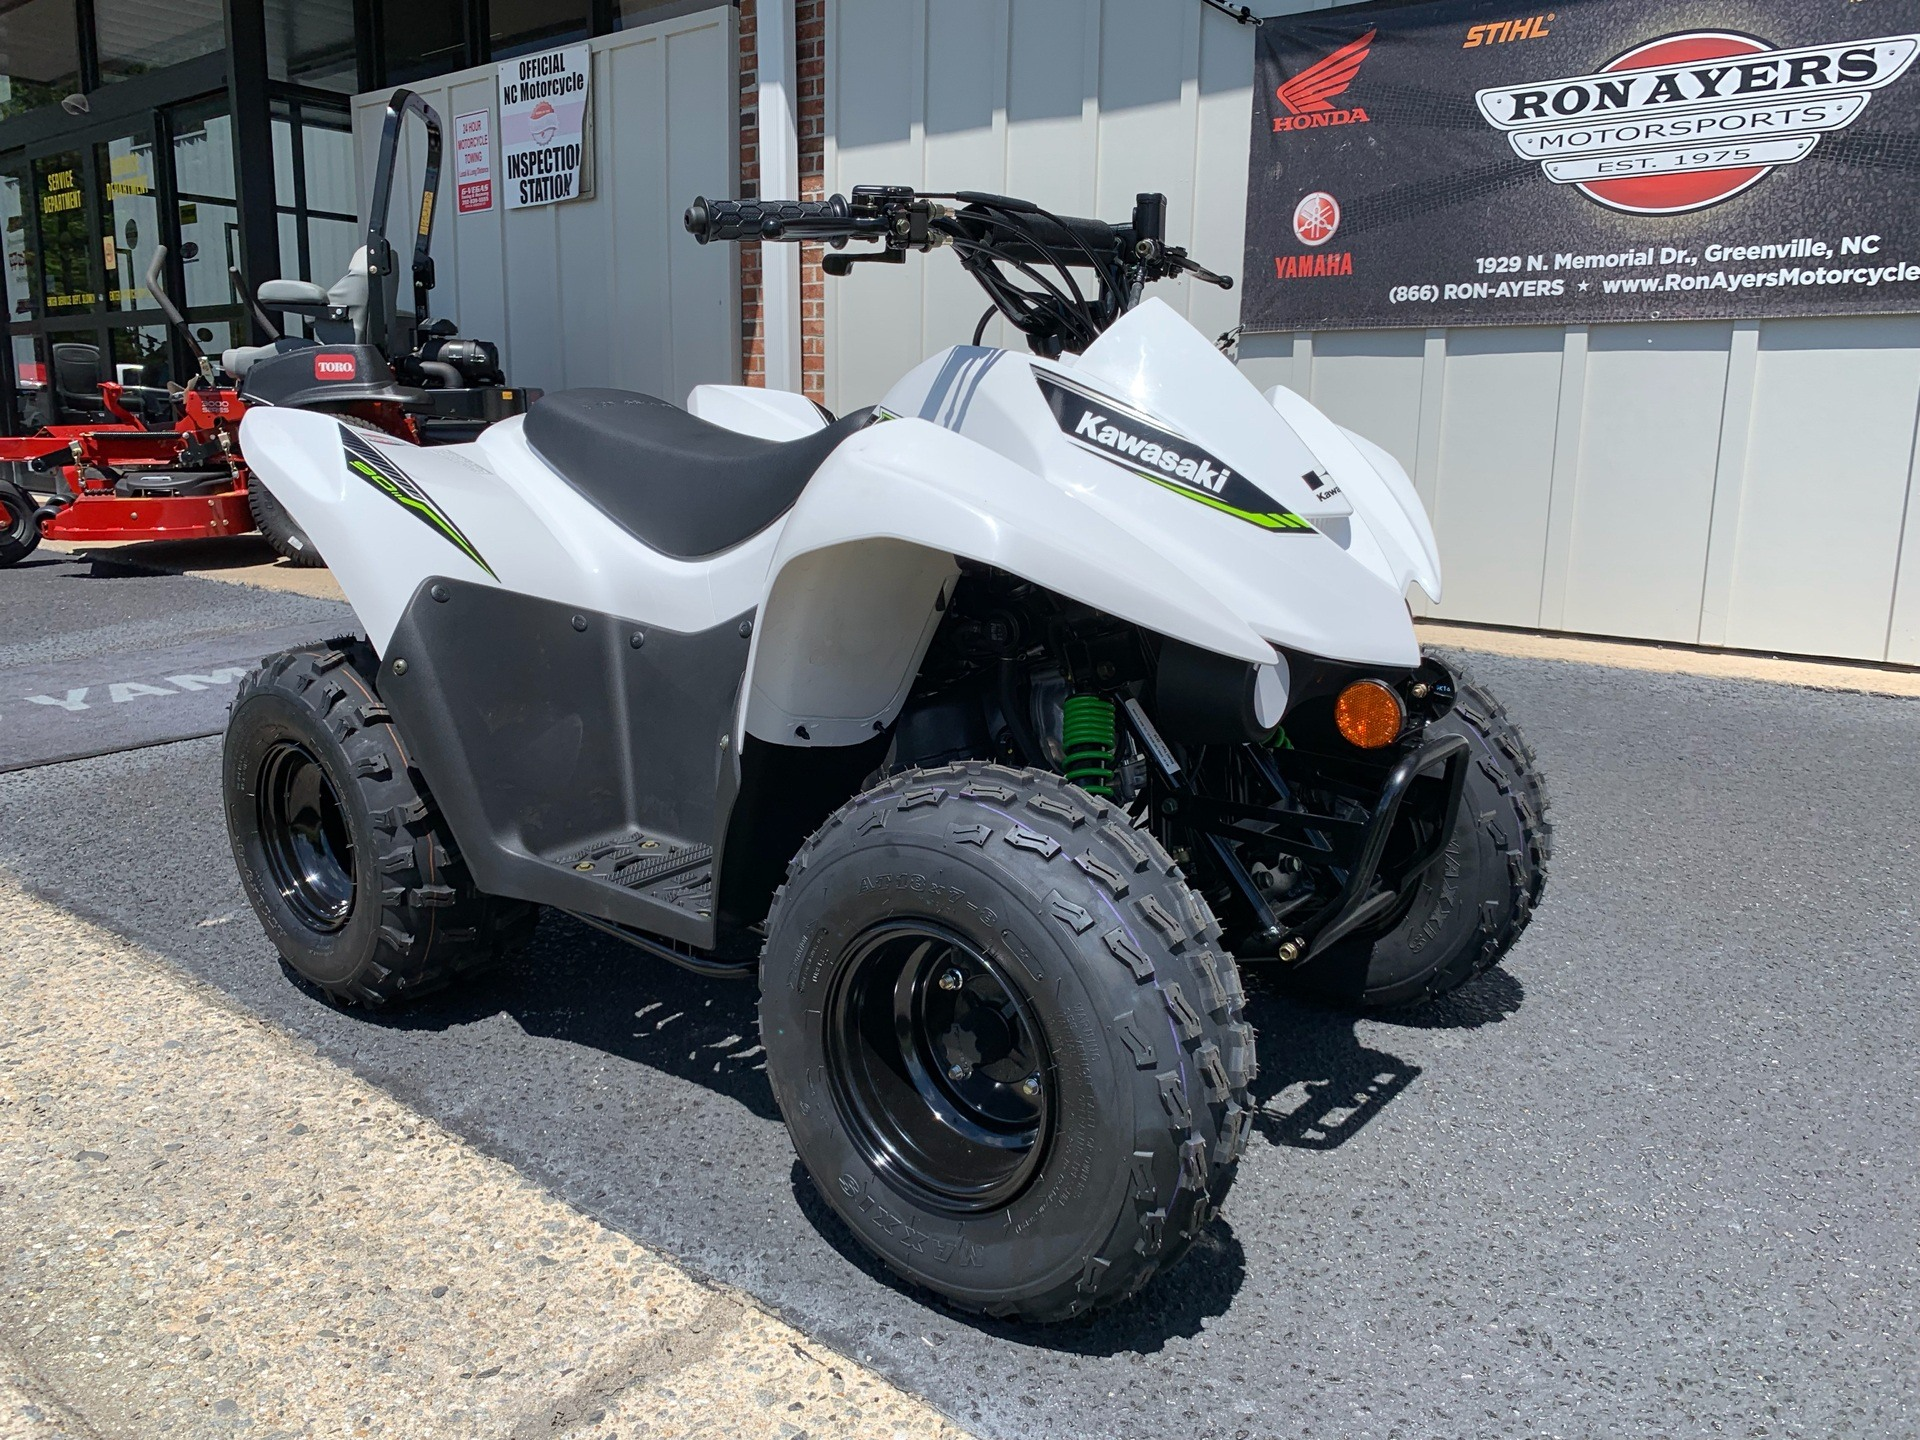 2019 Kawasaki KFX 90 in Greenville, North Carolina - Photo 3